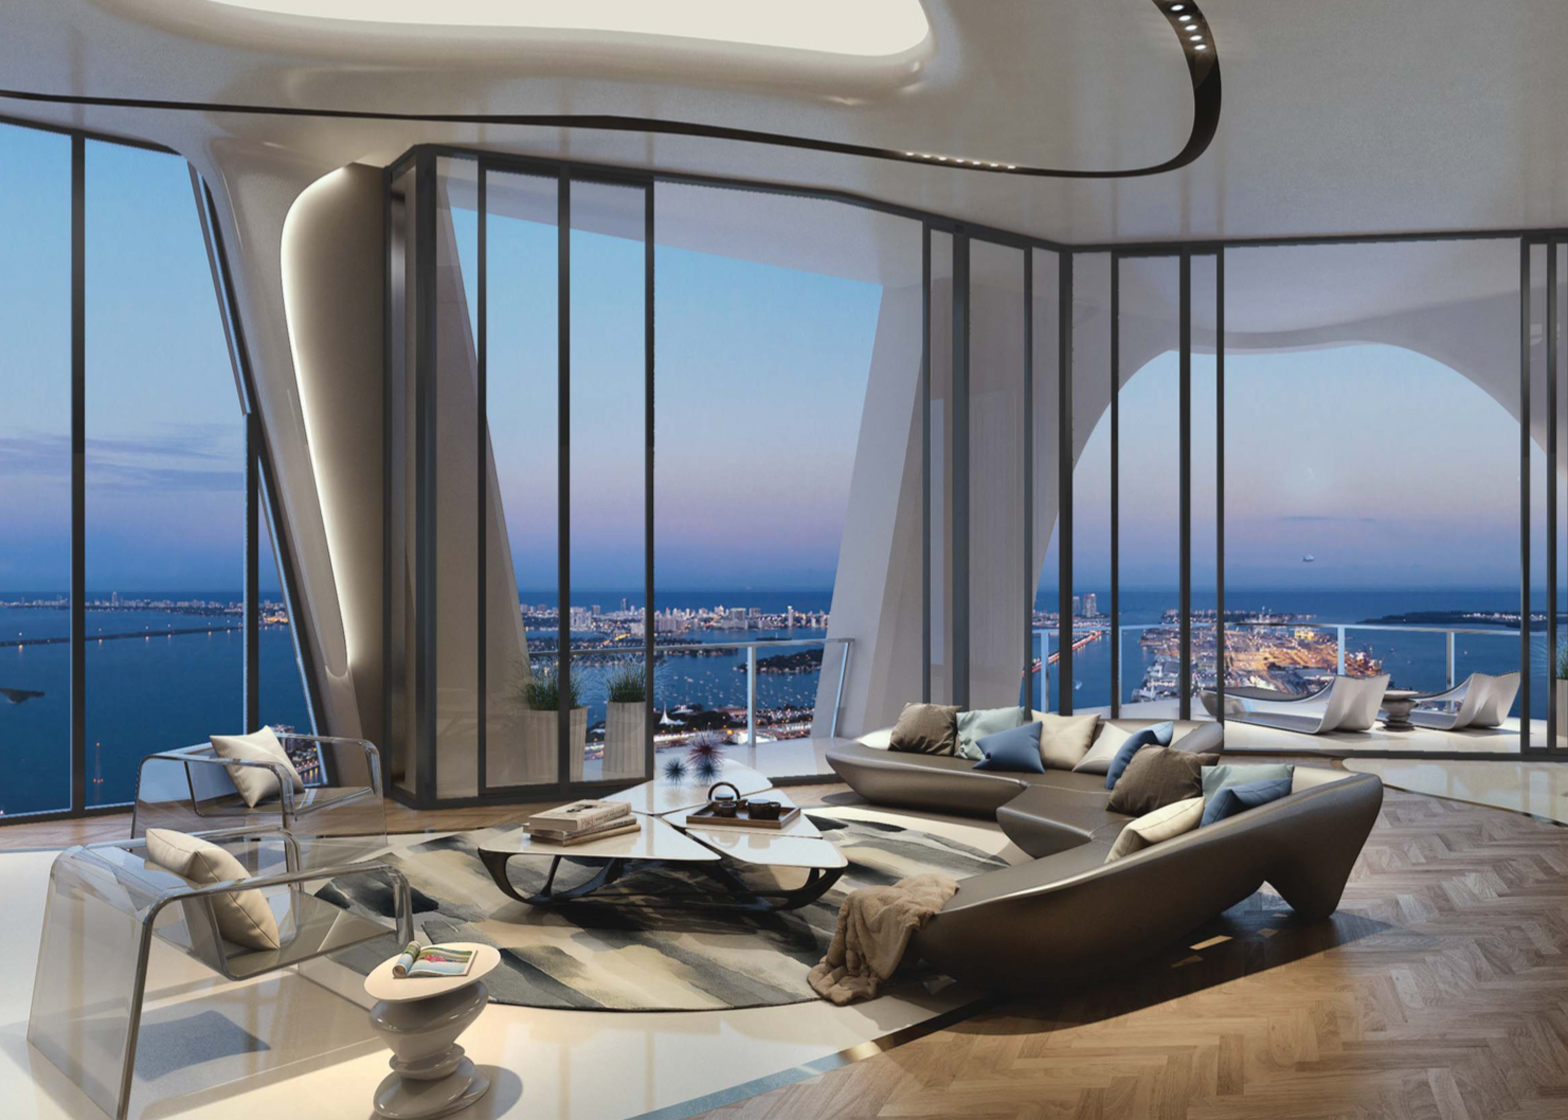 zaha-hadid-one-thousand-museum-residential-tower-miami_dezeen_ss_7.jpg